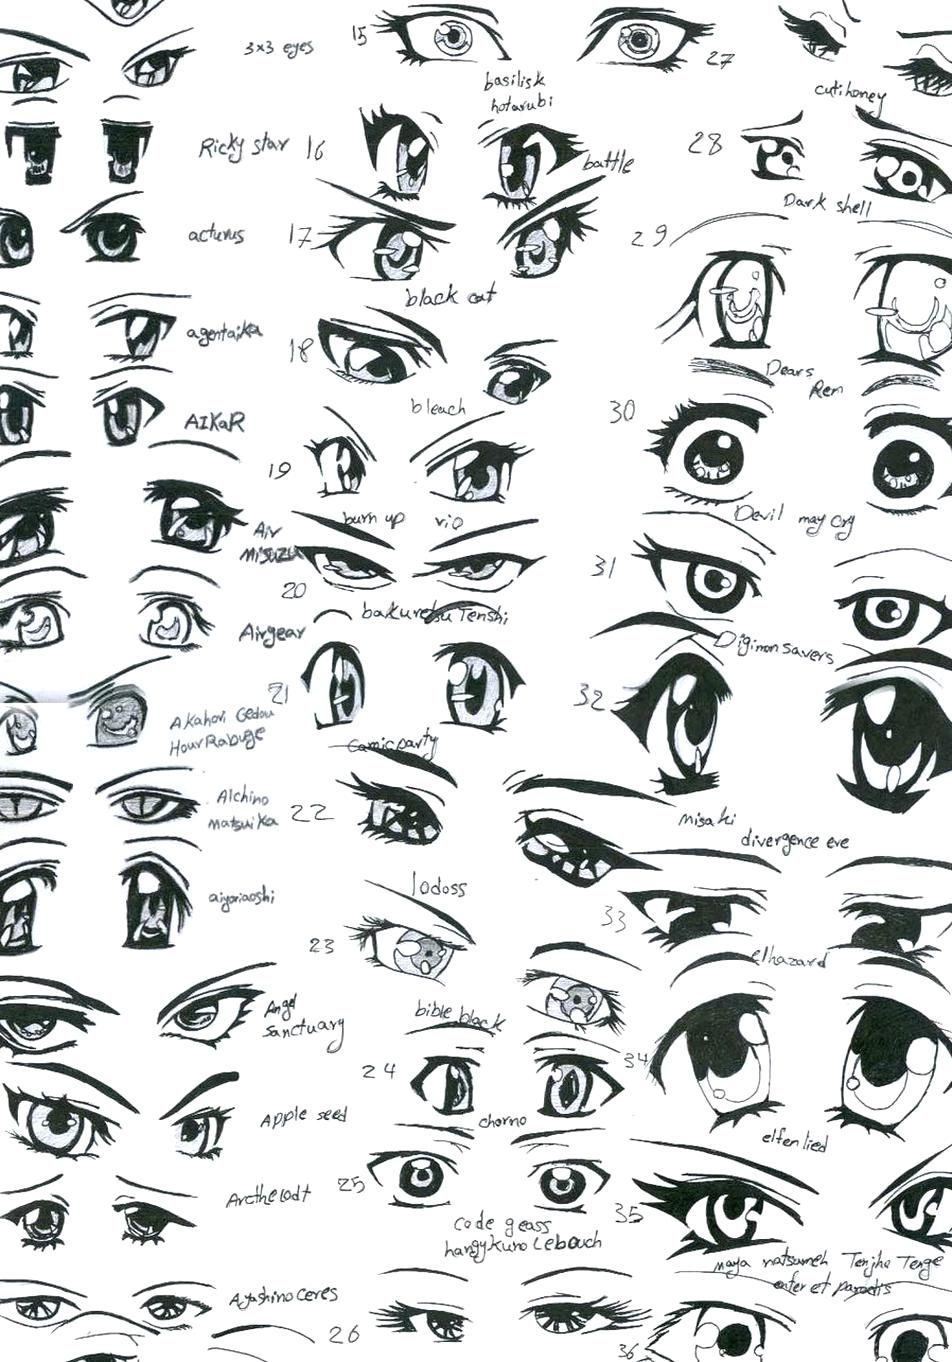 Anime Eyes In 2020 Female Anime Eyes How To Draw Anime Eyes Manga Eyes